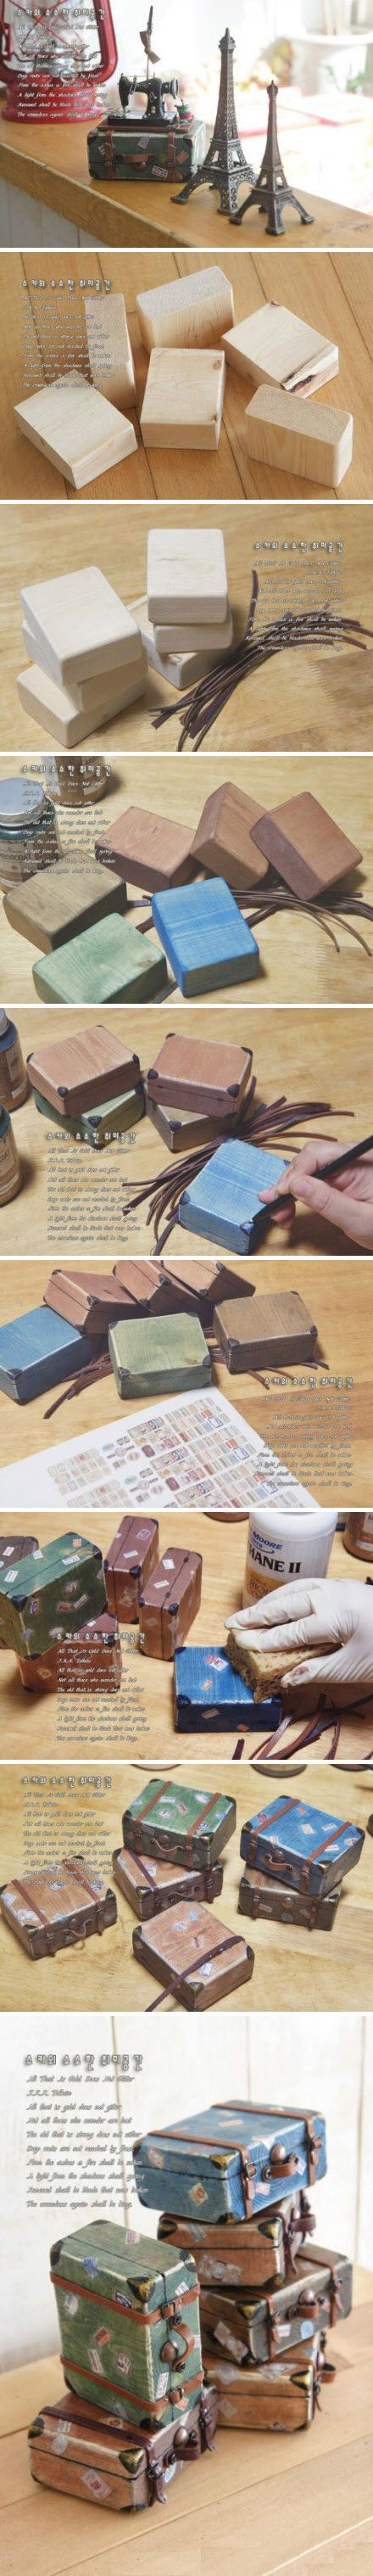 This is a fun pin. You have to pay good attention to detail unless you read Chinese. You use wooden blocks and some leather straps to create the illusion of vintage suitcases. Cute decorative gift item.